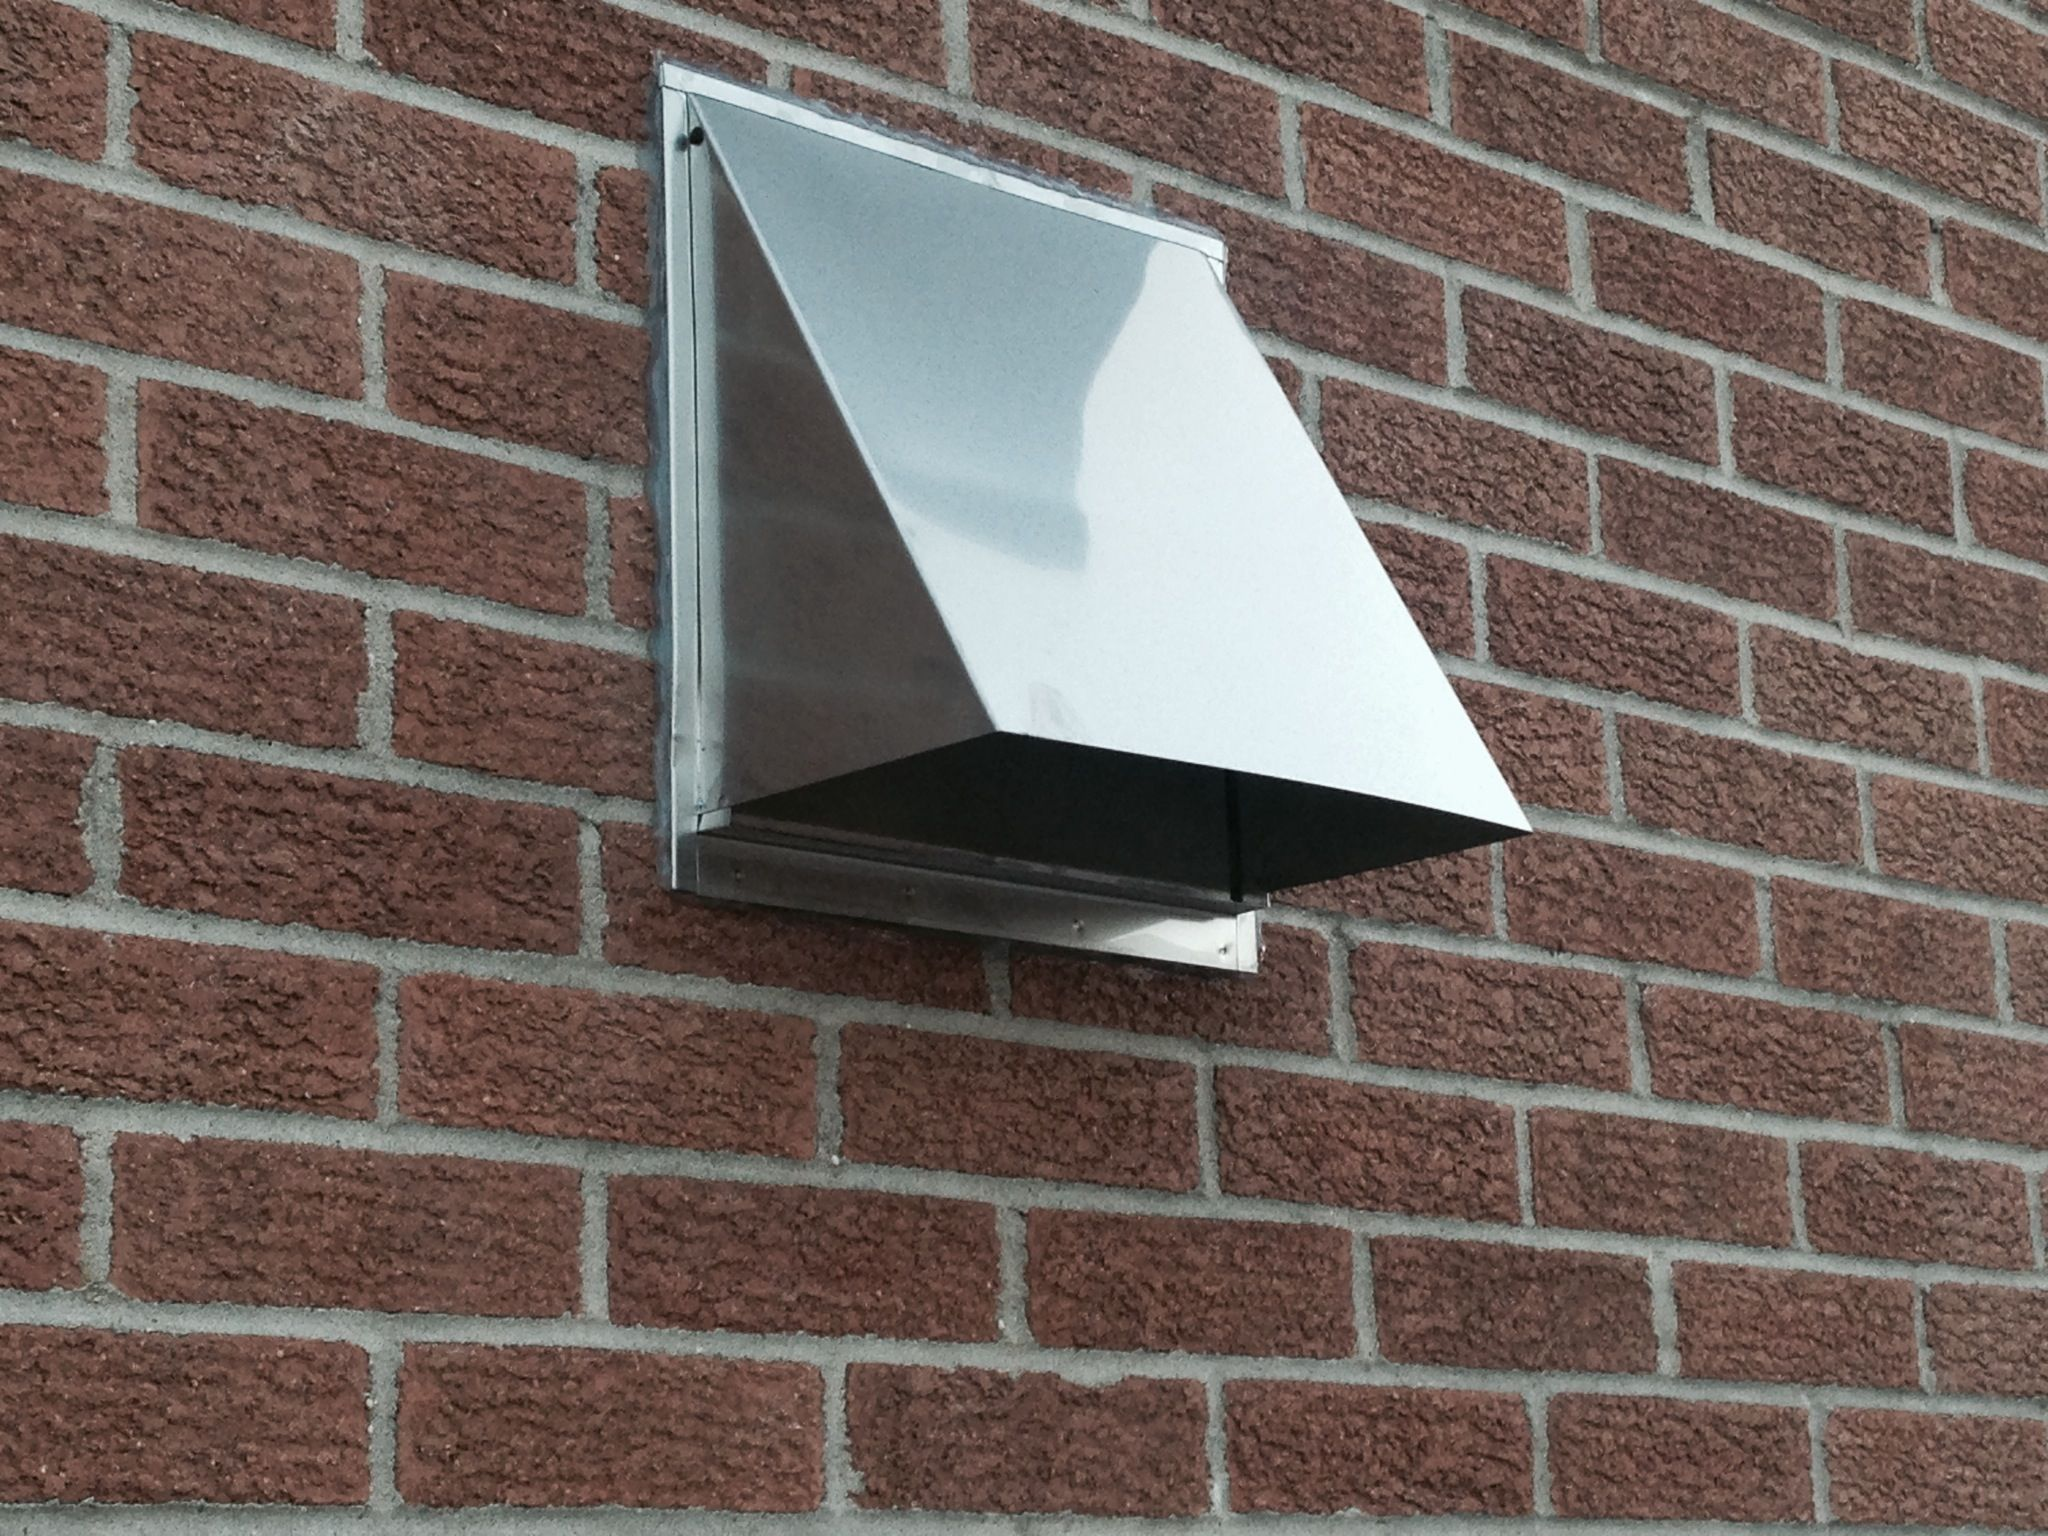 Exterior Wall Vent Covers Decor Ideasdecor Ideas Kitchen Cooktopskitchen Stoverange Hood